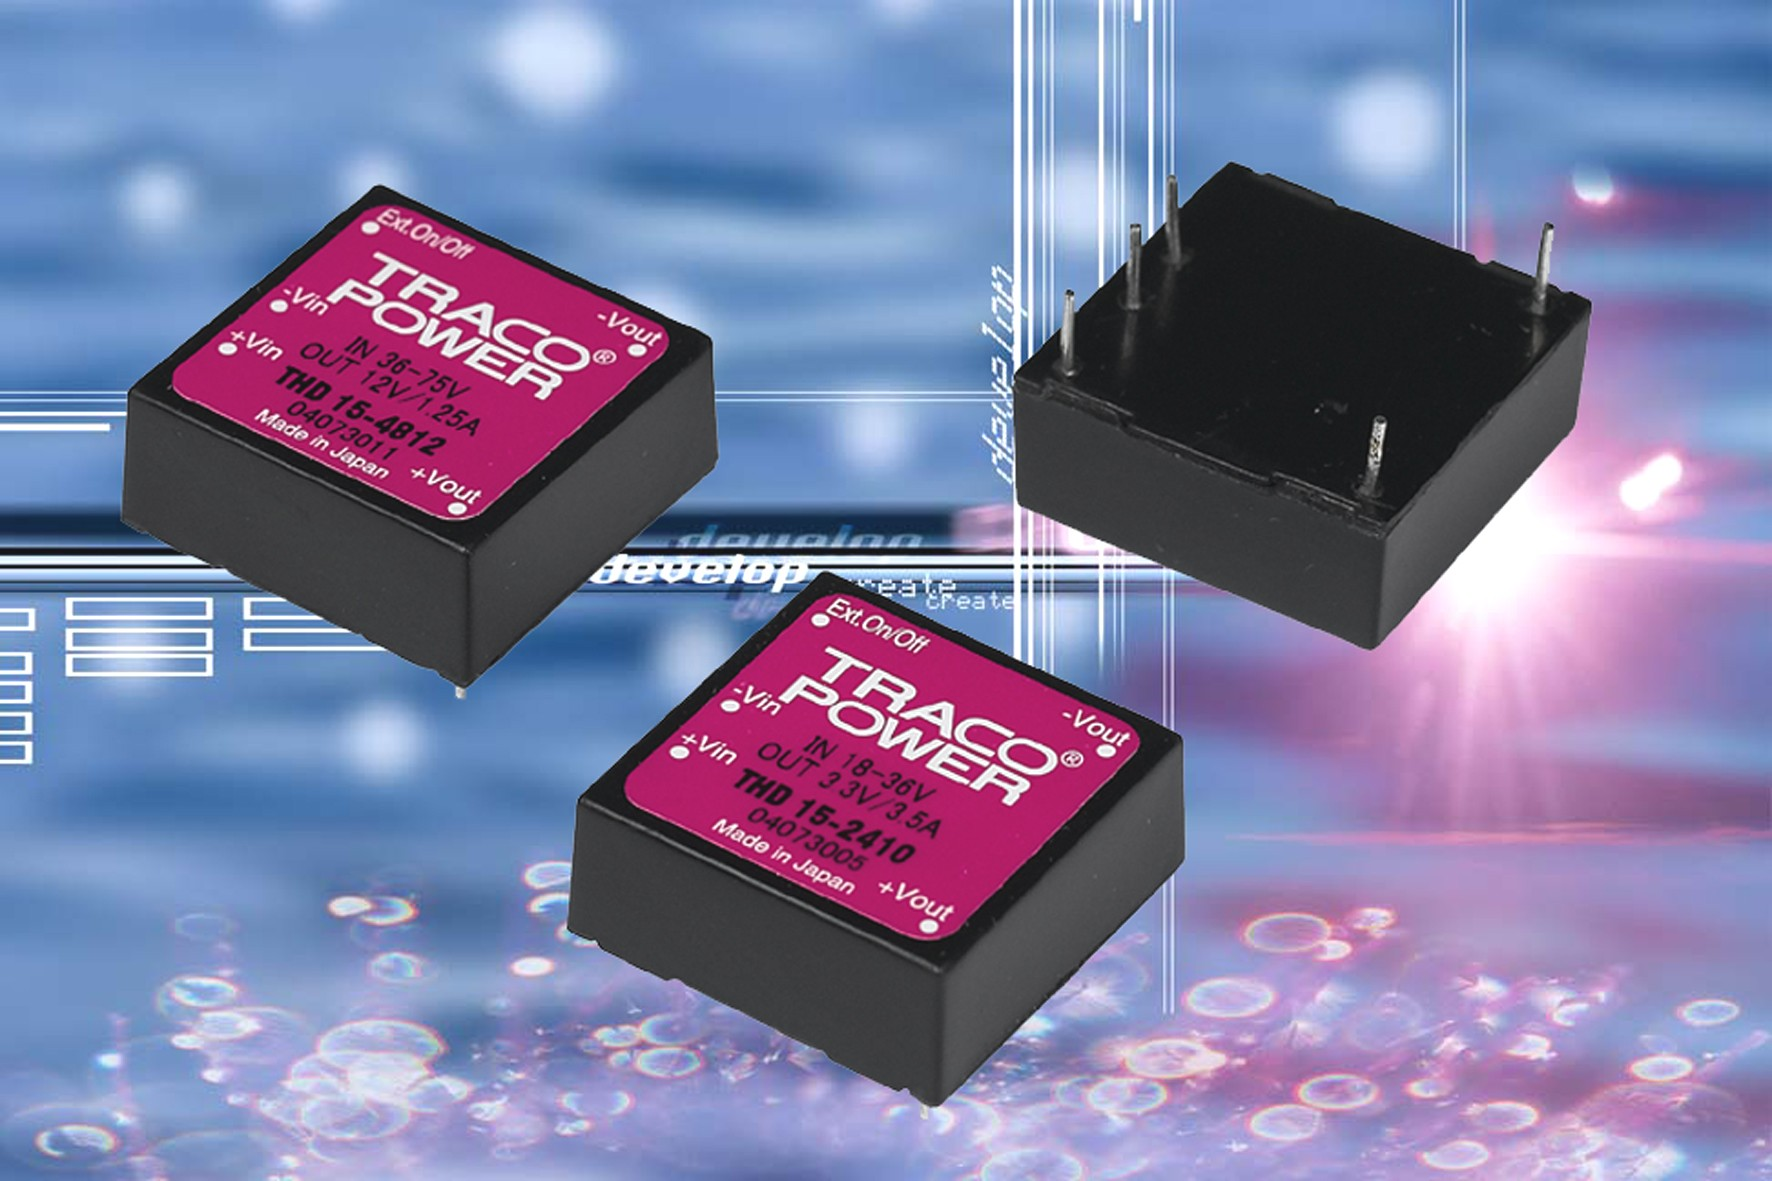 DC/DC converters give 15W from a 1 x 1 x 0.4in package